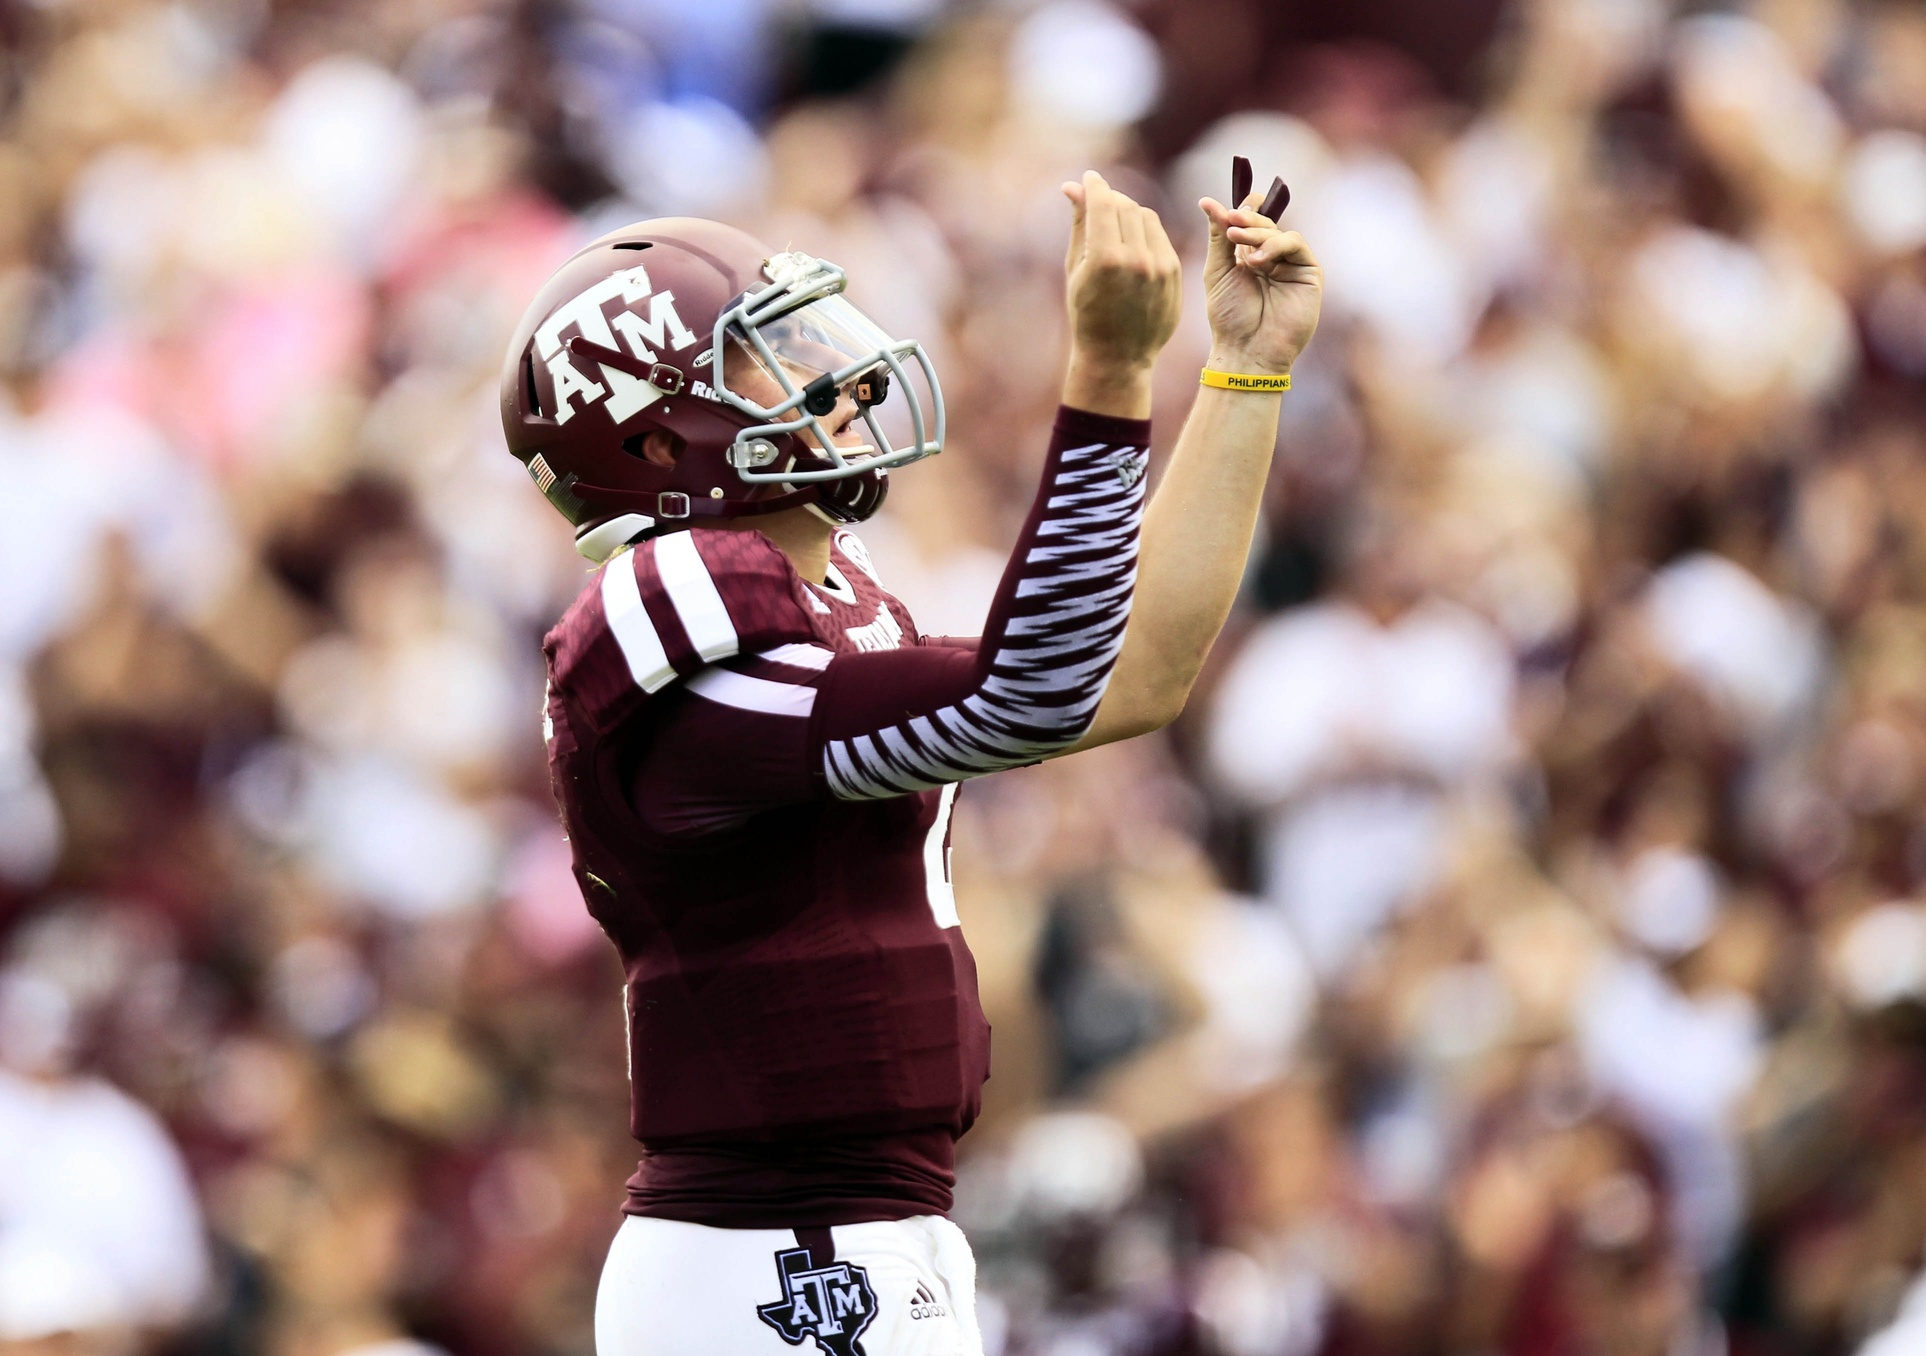 Cowboys Blog - Johnny Manziel: Why the Dallas Cowboys Aren't the Team For Him